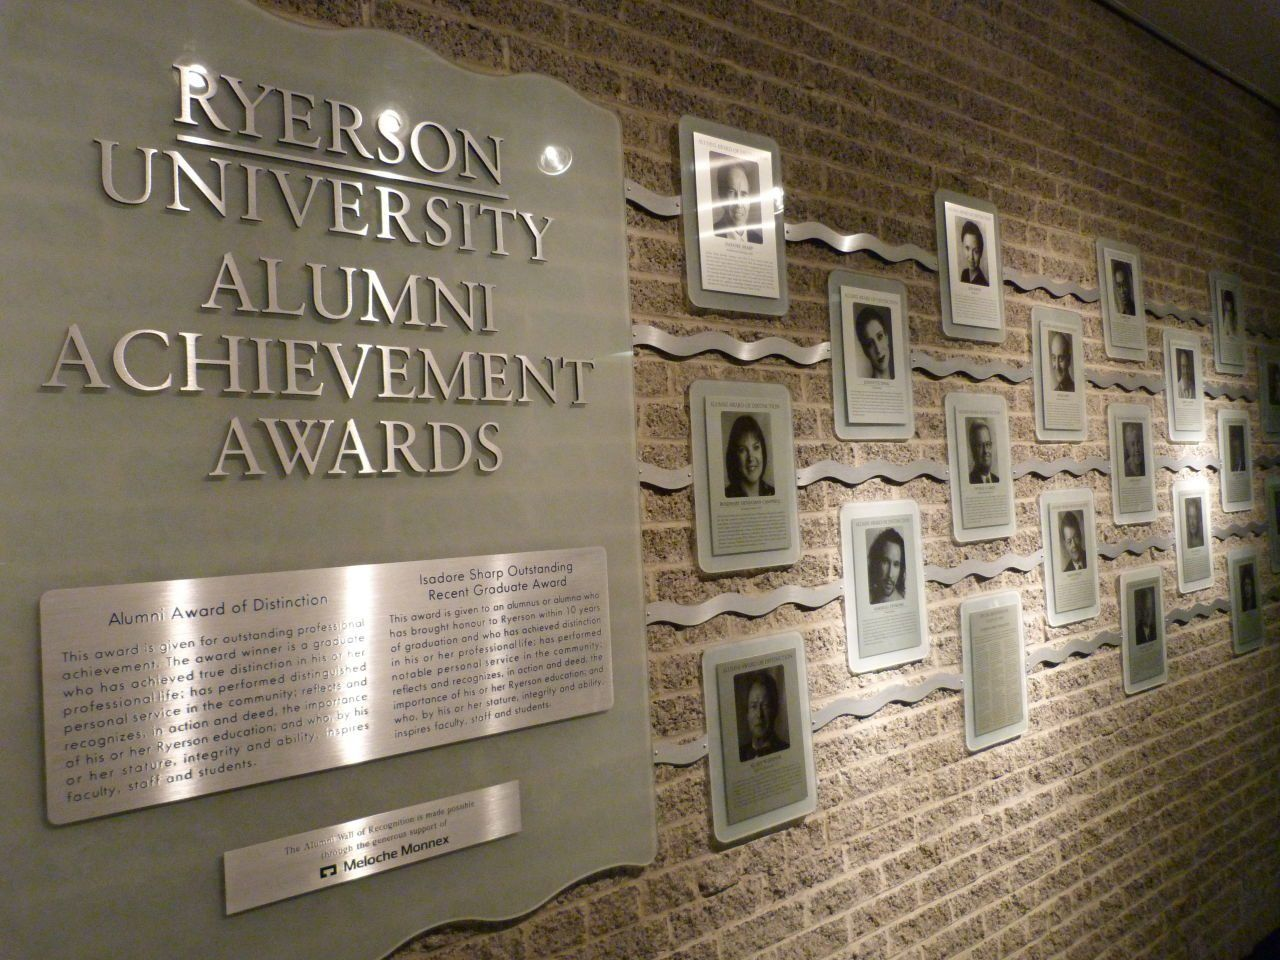 Ryerson Alumni Achievement Awards With Images Award Display